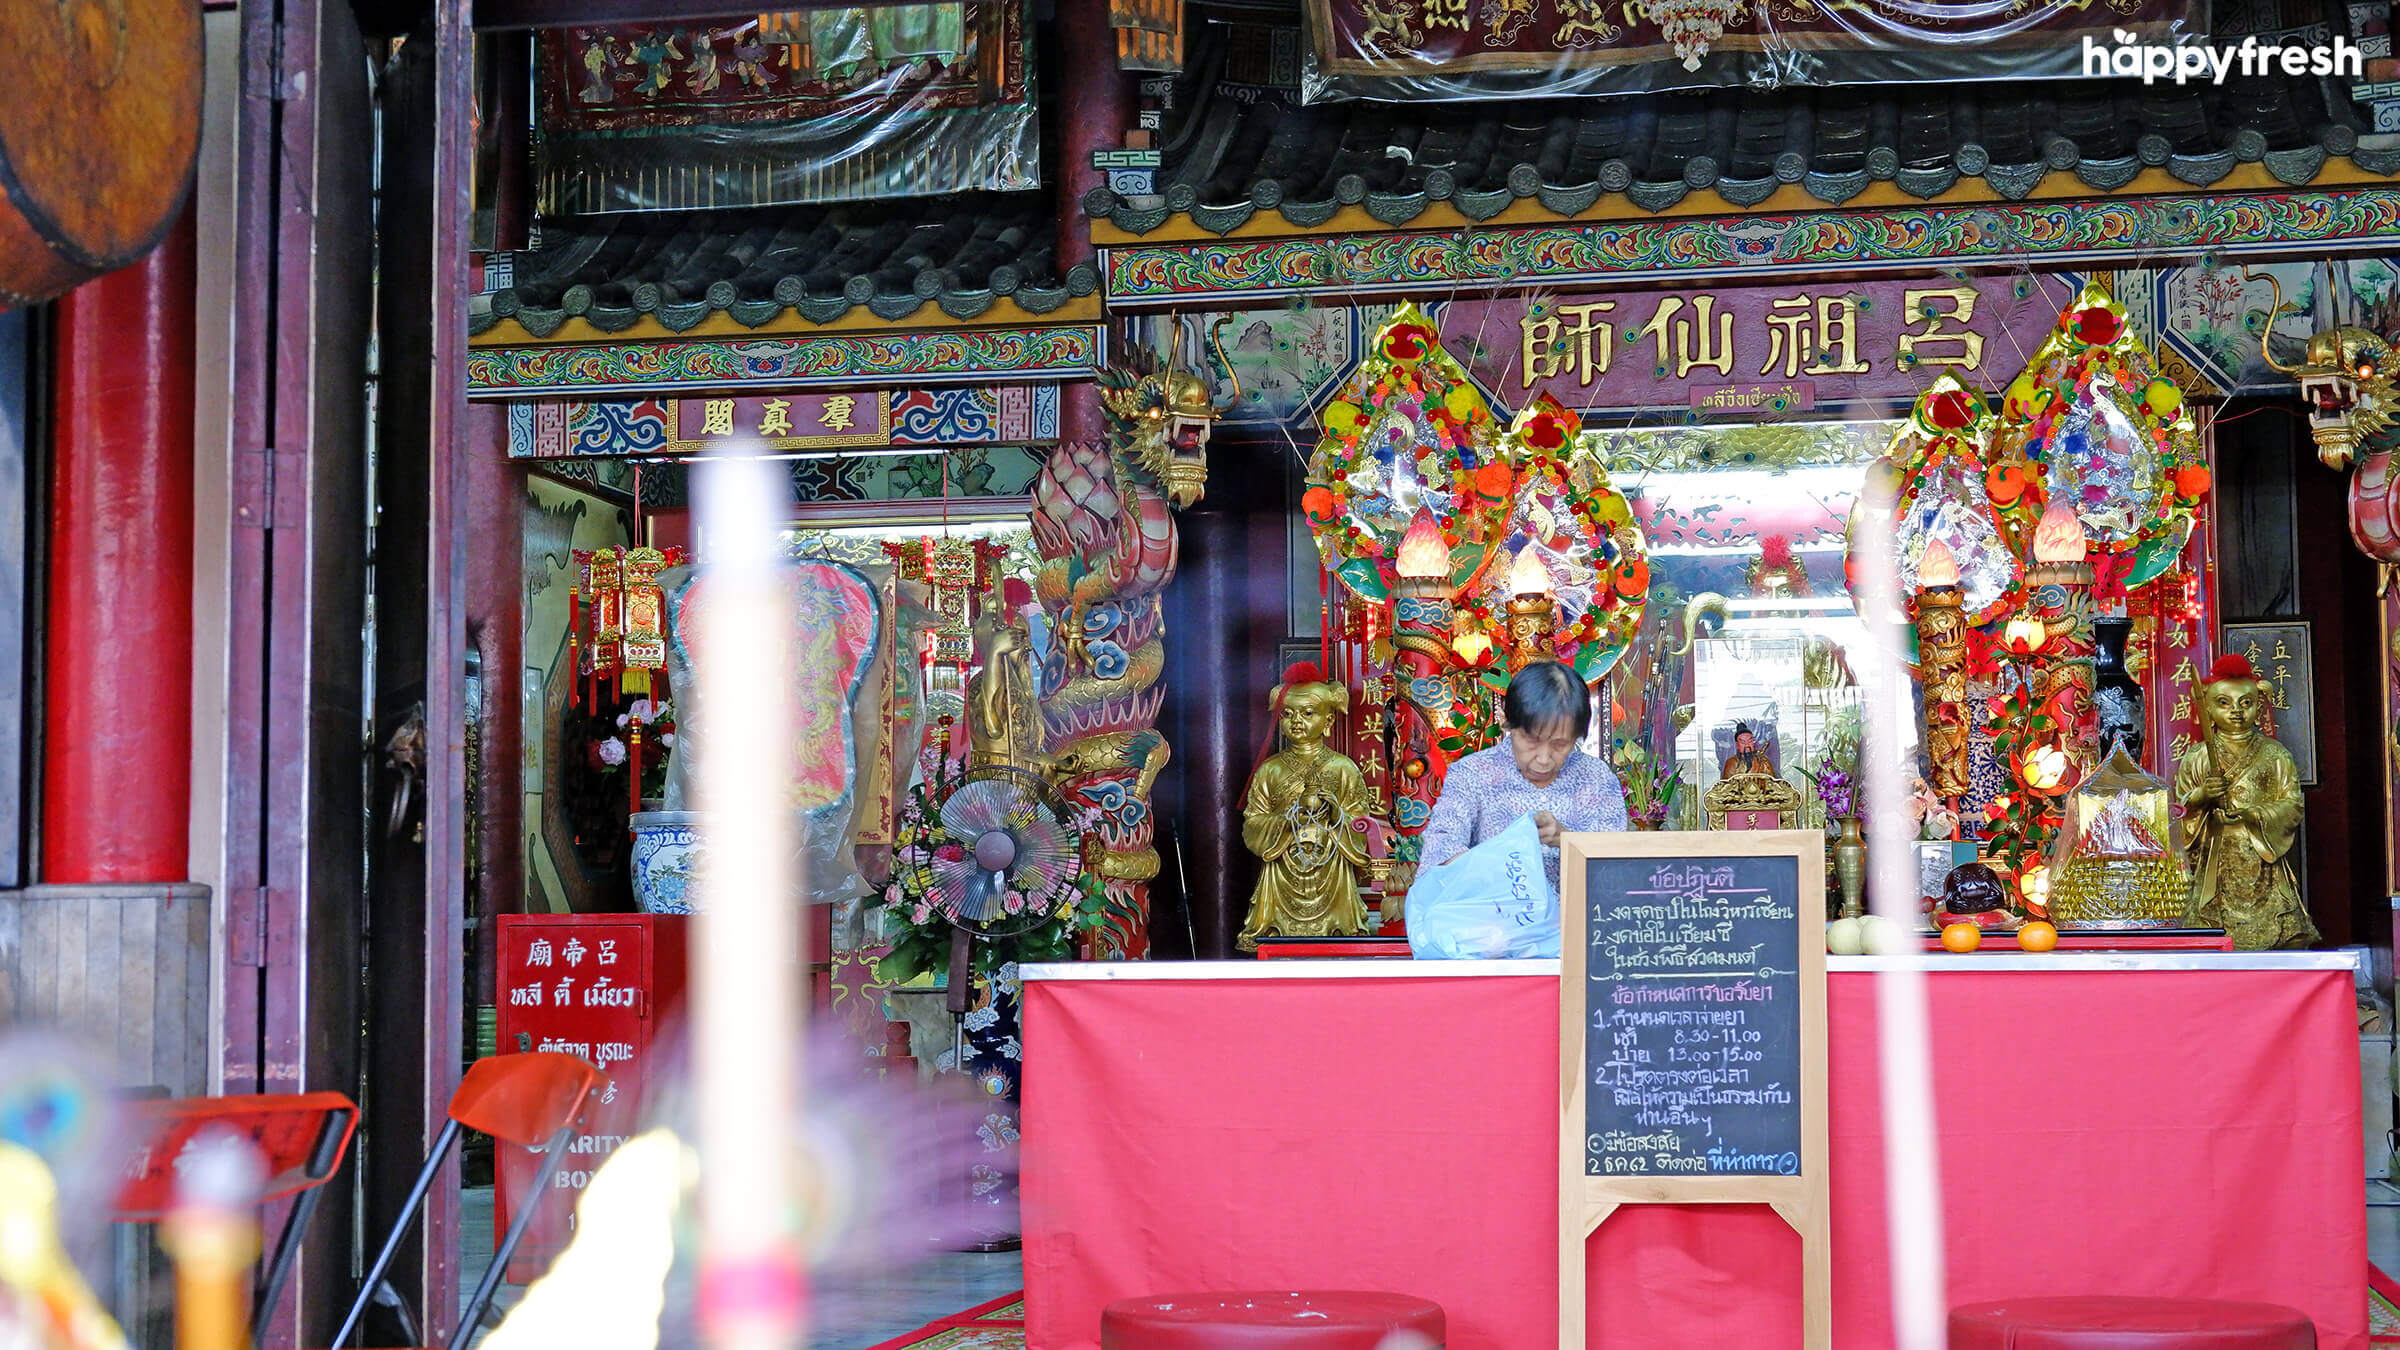 HappyFresh_Visit_6_Chinese_Shrines_In_Chinatown_Kuan_Yim_Shrine_3